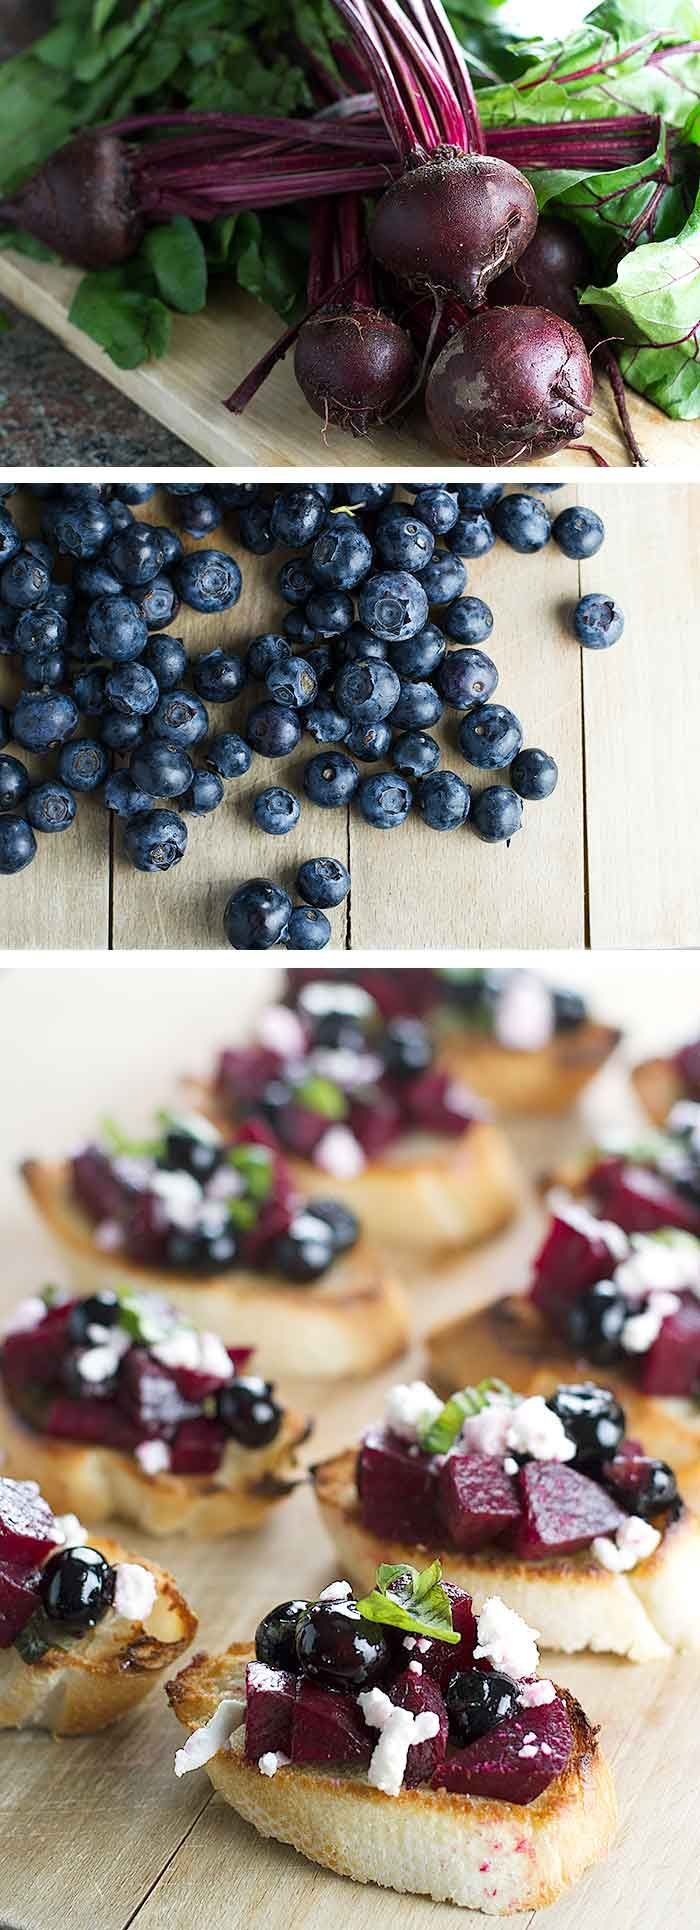 Beet and Blueberry Bruschetta | girlgonegourmet.com #TopChefHome #sponsored